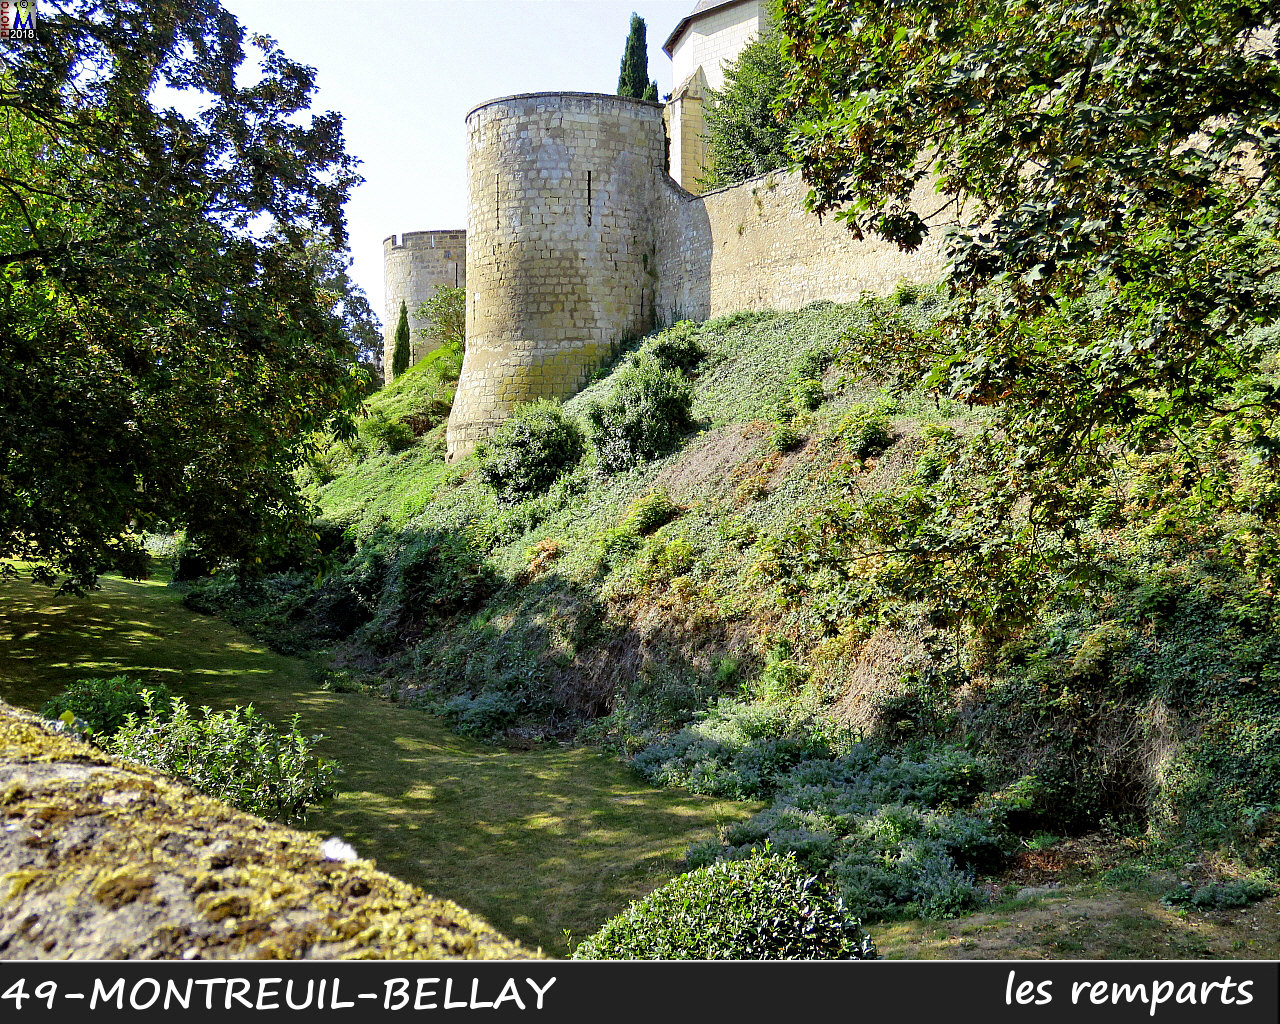 49MONTREUIL-BELLAY_remparts_1028.jpg